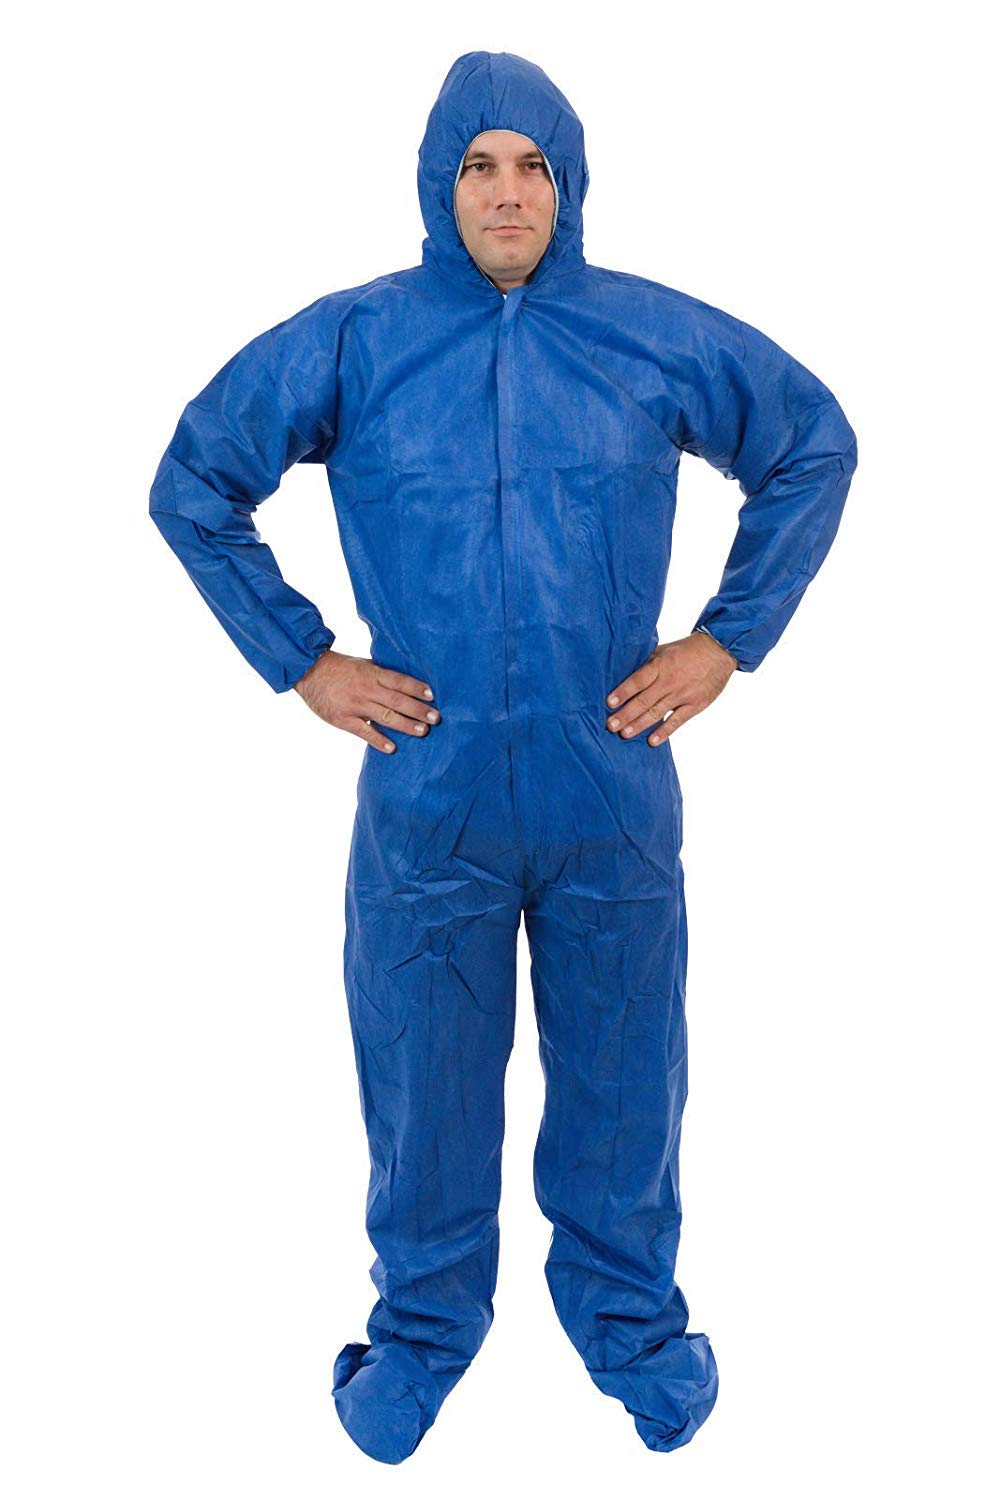 International Enviorugard – Lightweight 3 Layer SMS General Protective Coverall for General Cleanup (25 per case) (3XL, Blue) by International Enviroguard (Image #1)